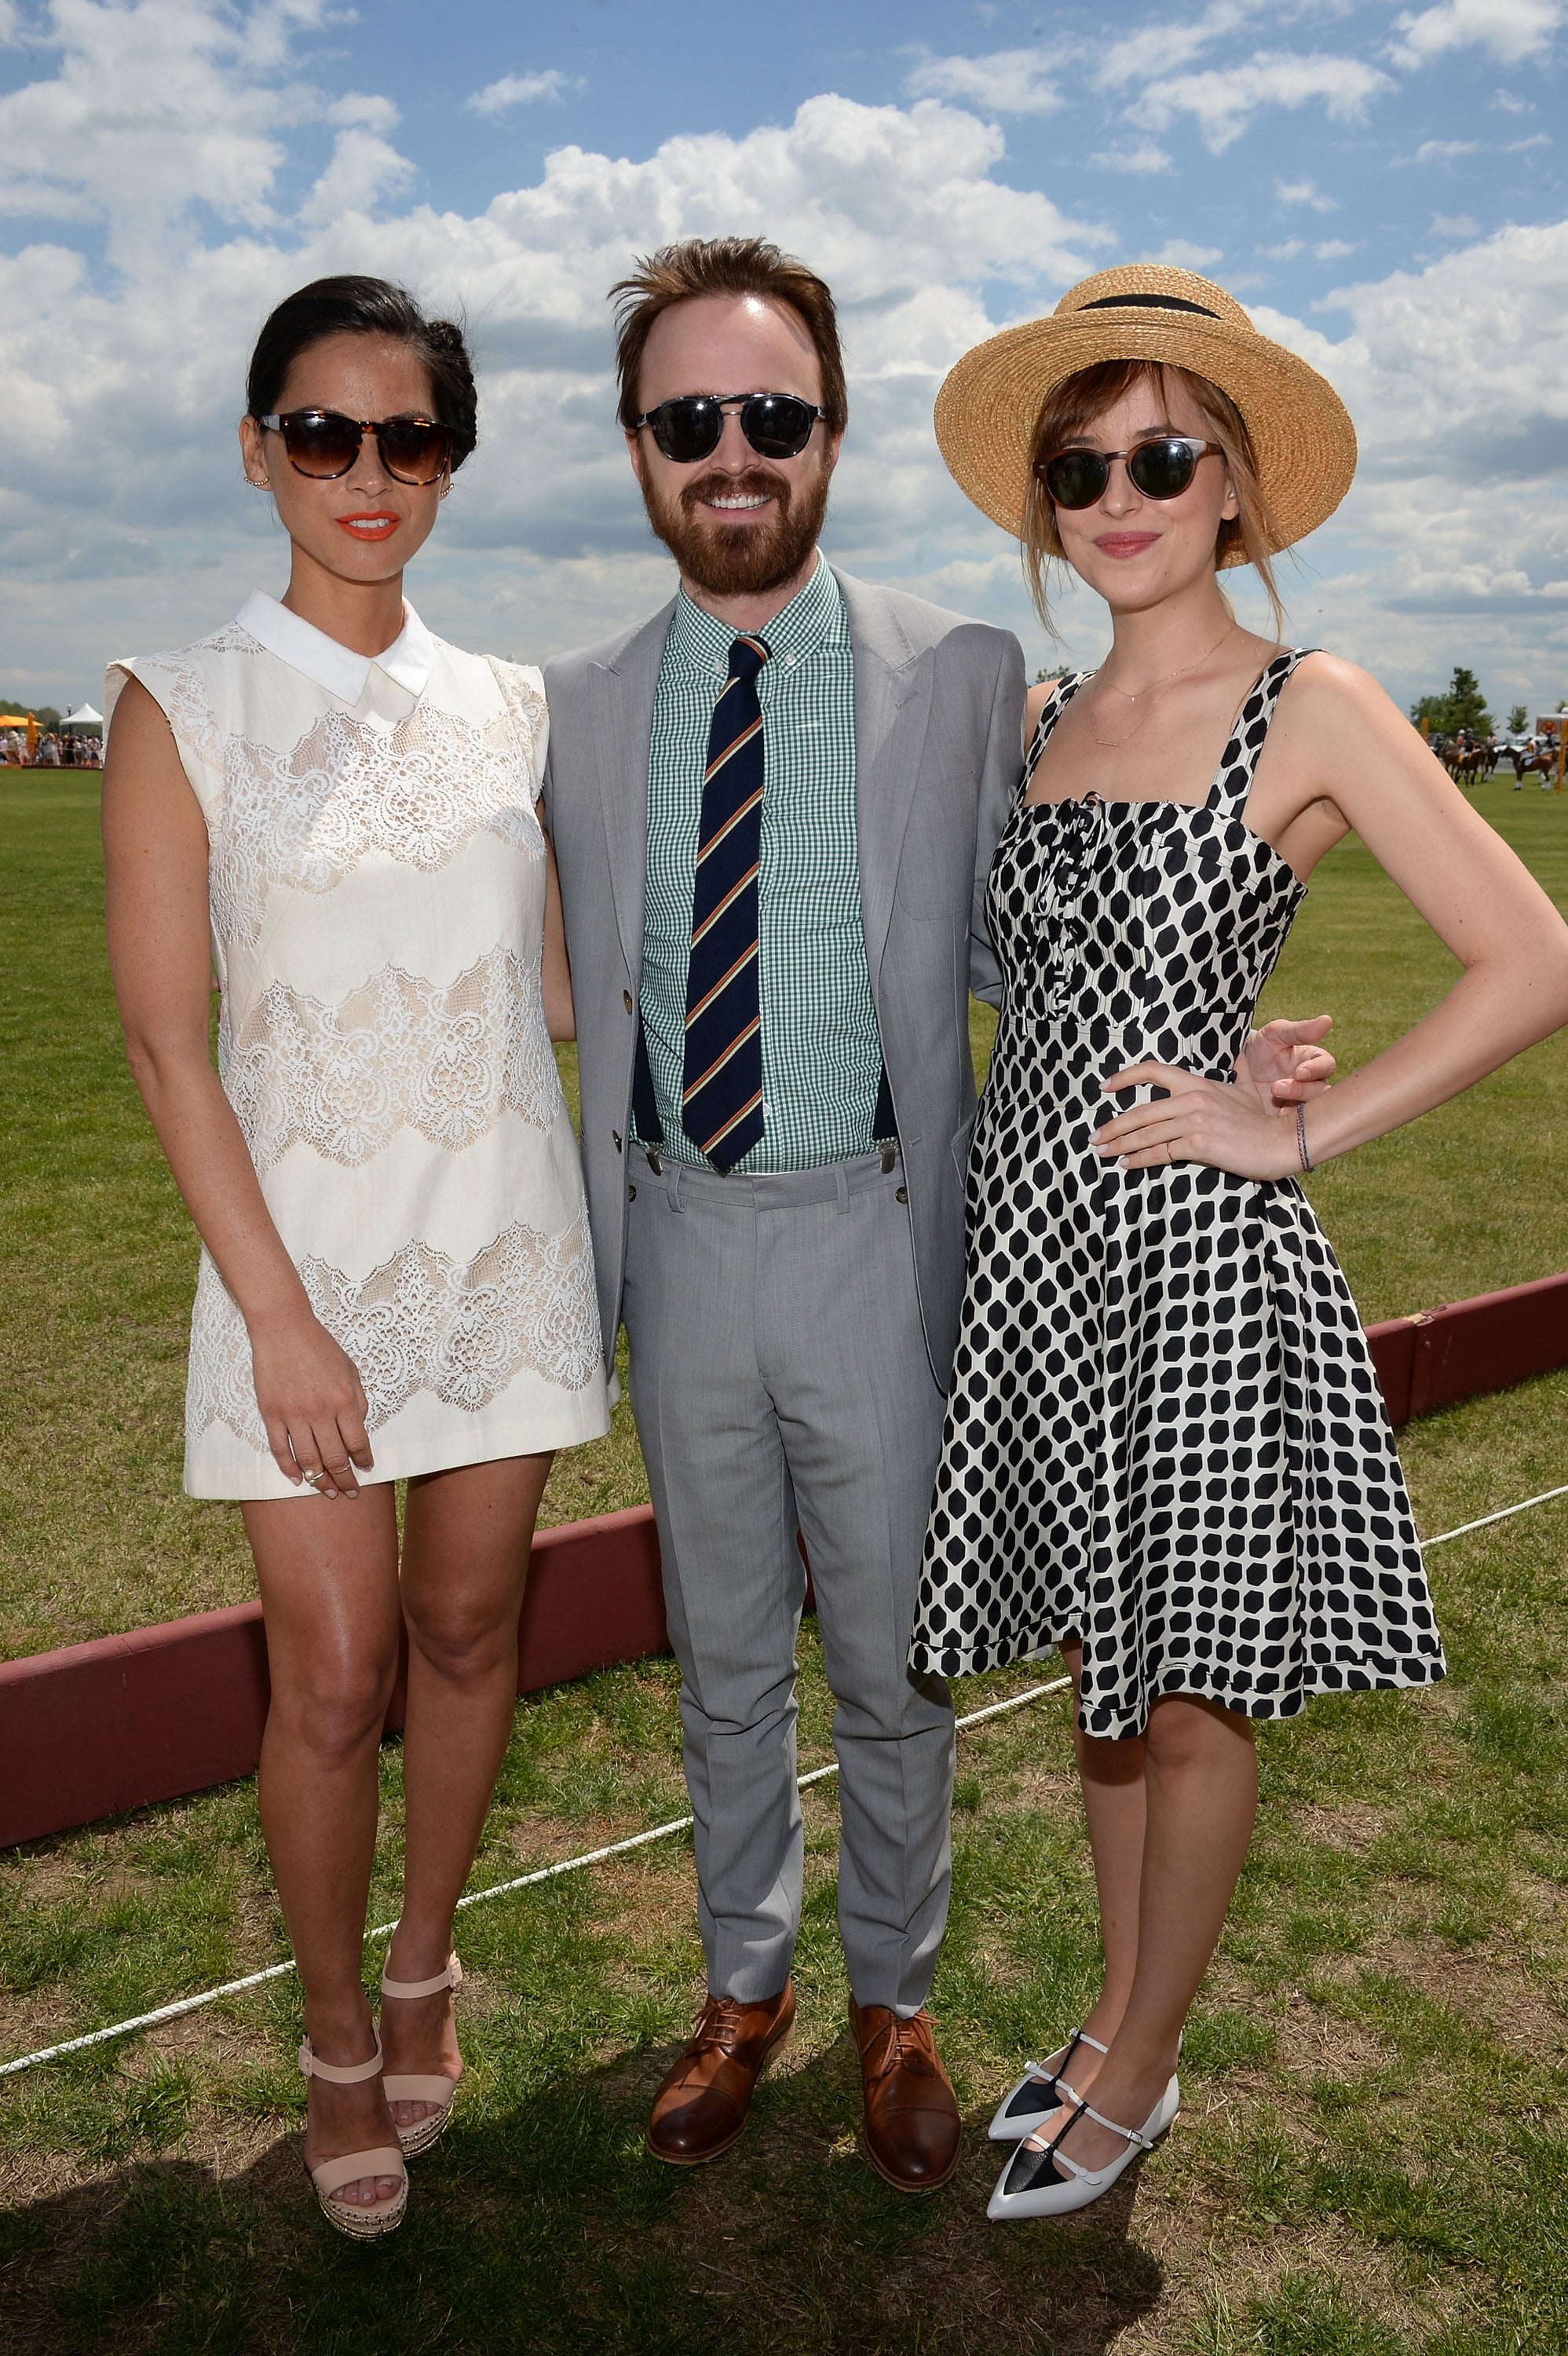 The blue and cloudy sky was the backdrop of Olivia, Aaron, and Dakota's day at the polo event.